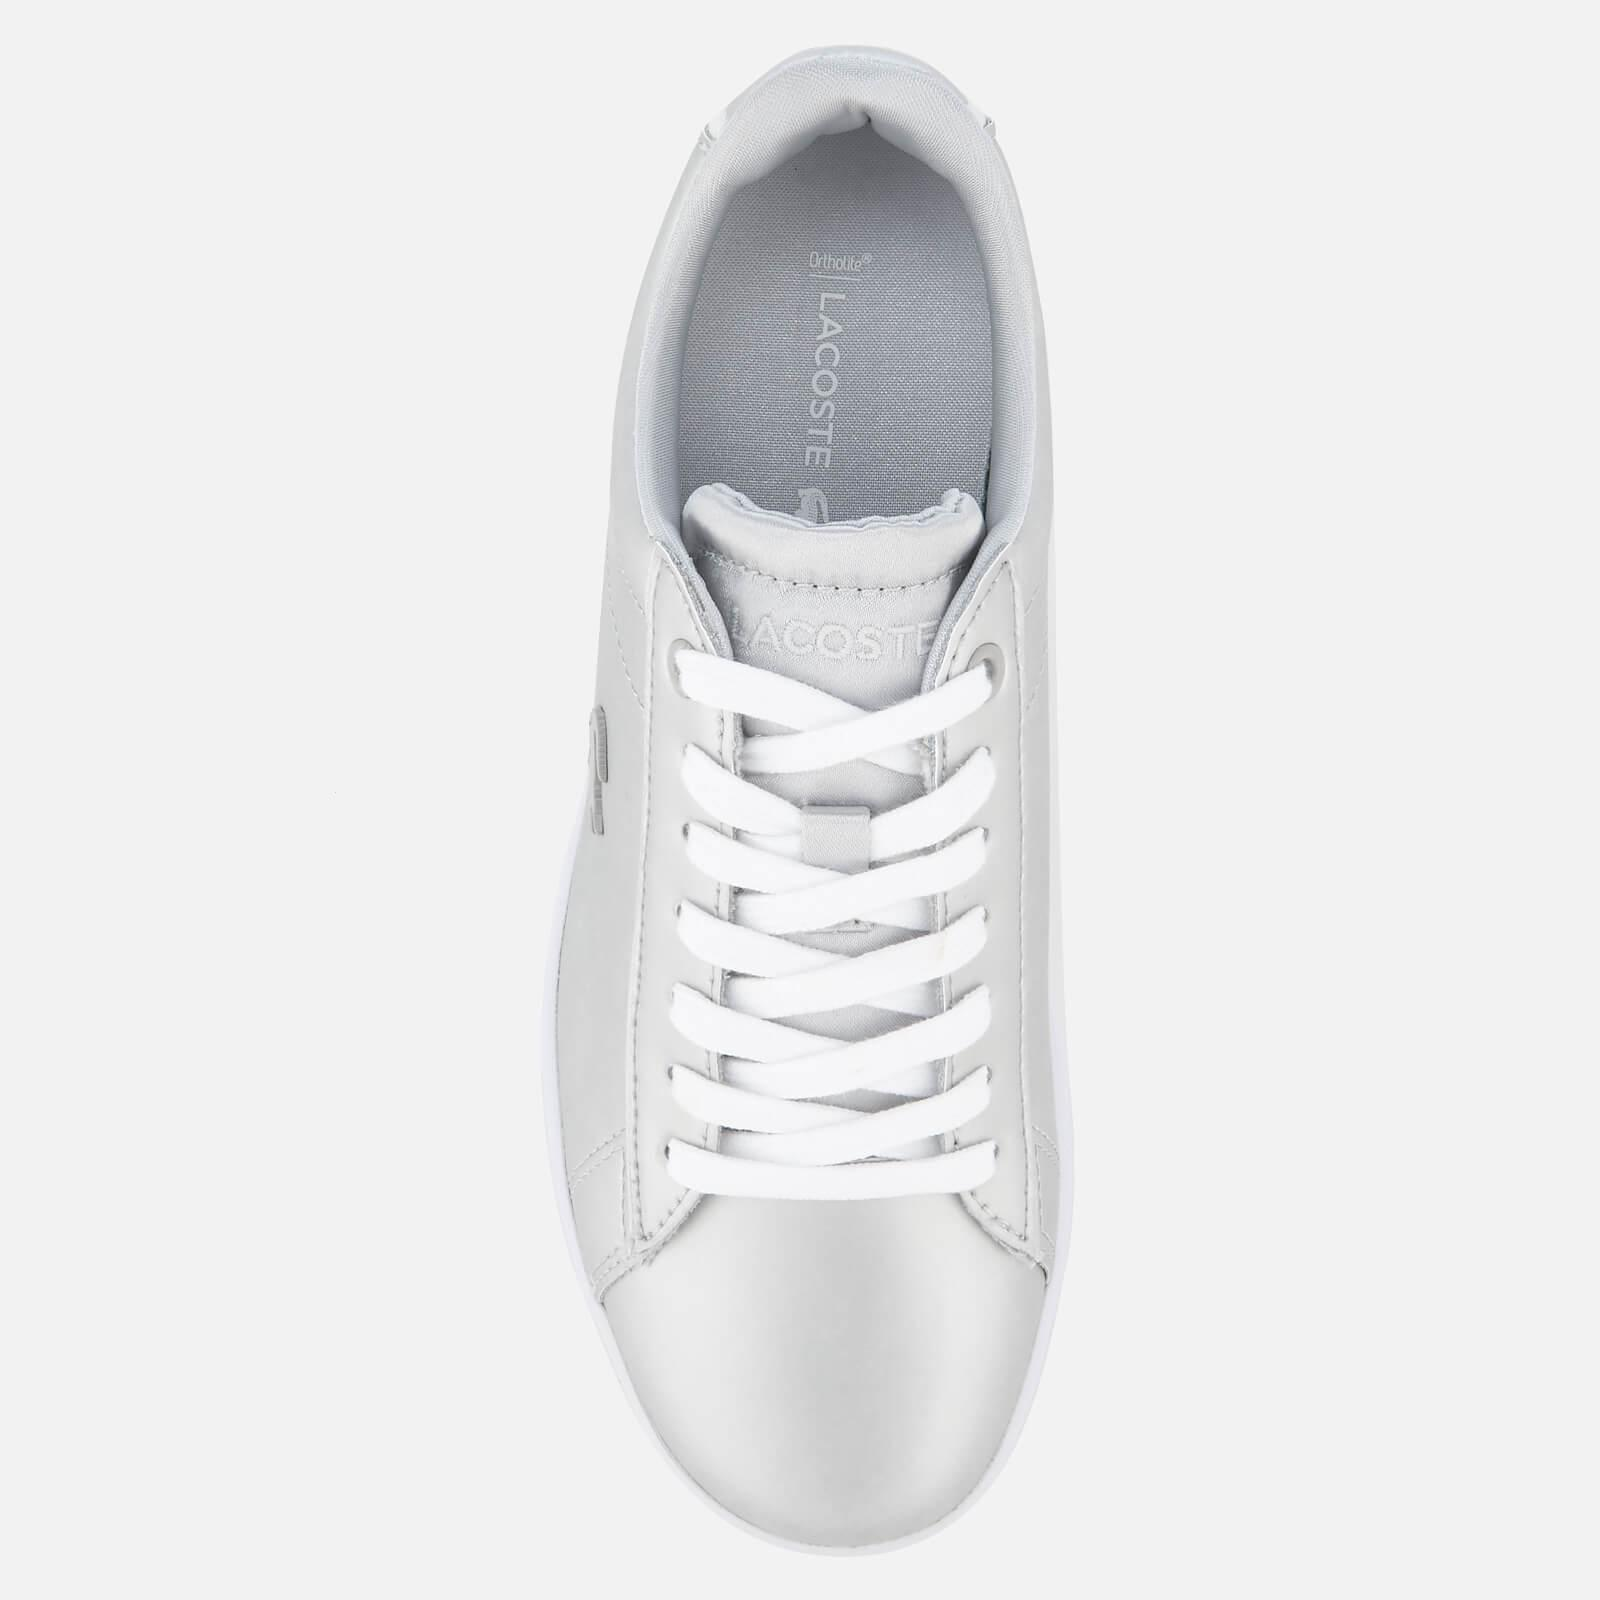 579cc9c7618c27 Lyst - Lacoste Carnaby Evo 118 1 Leather Trainers in Metallic